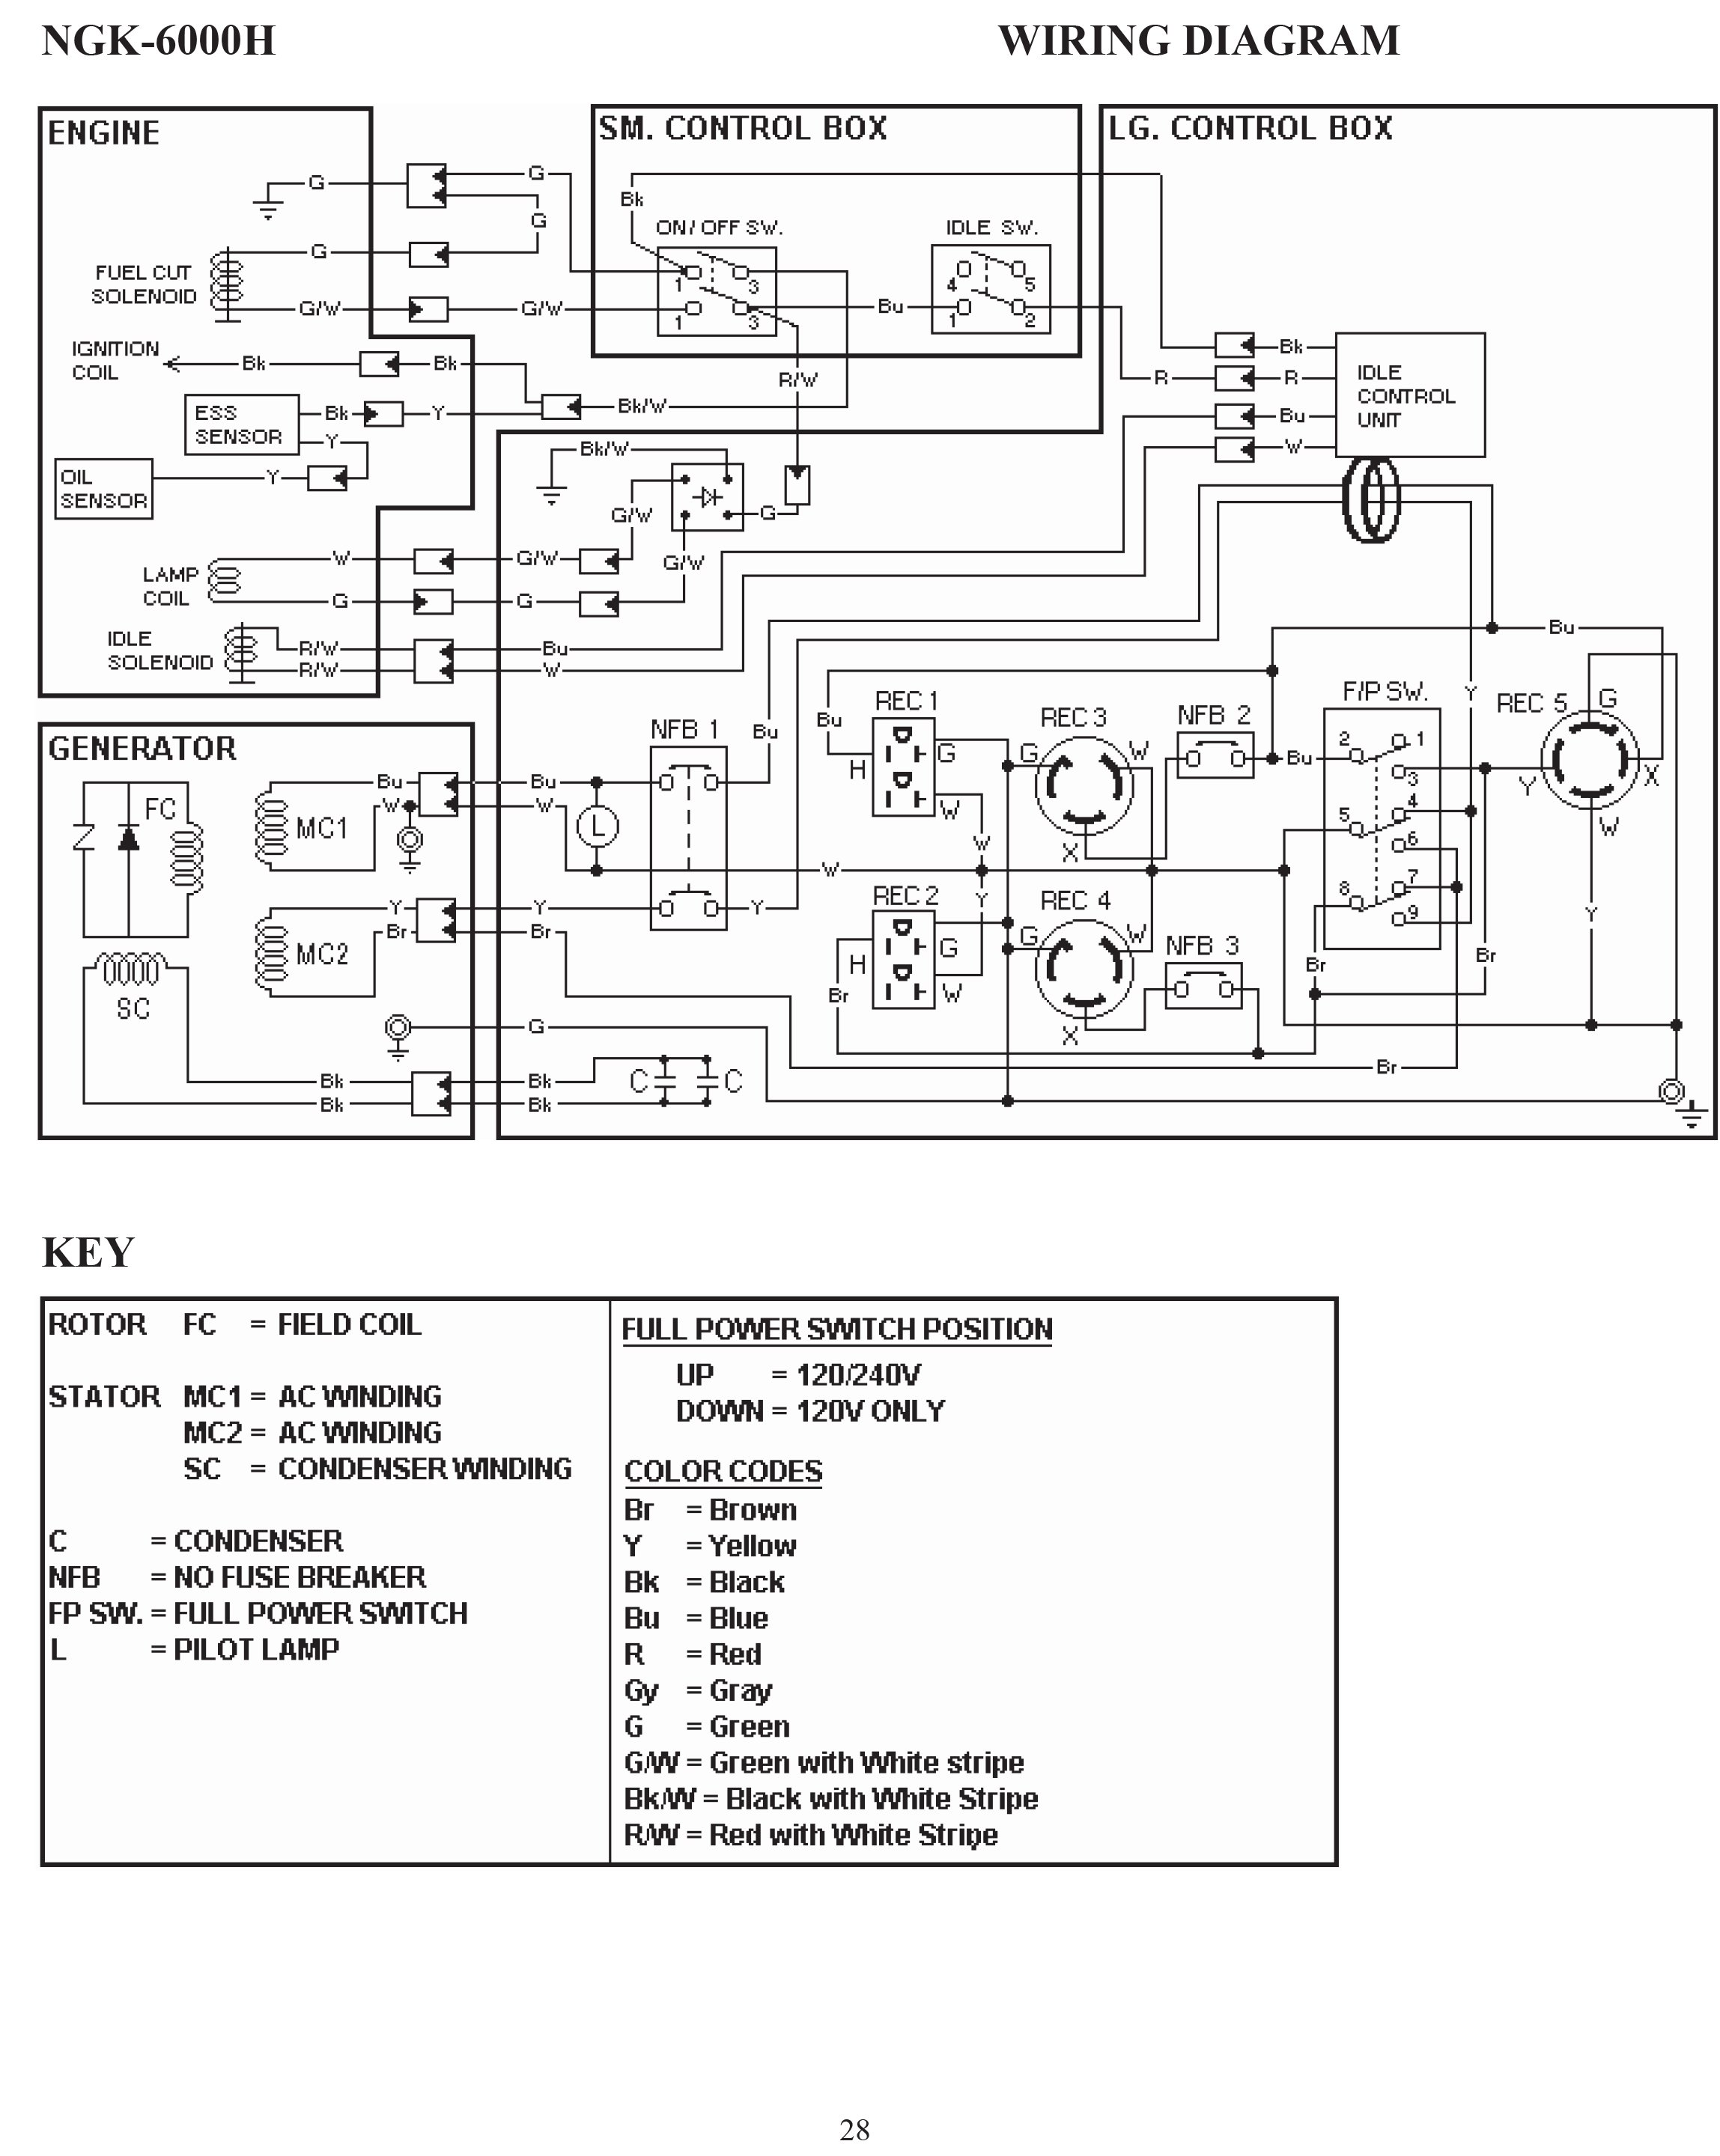 hank i see your reply to the problem with the dewalt dg6000 from 2 rh  justanswer com 1987 Subaru GL Engine Subaru Stereo Wiring Harness Diagram